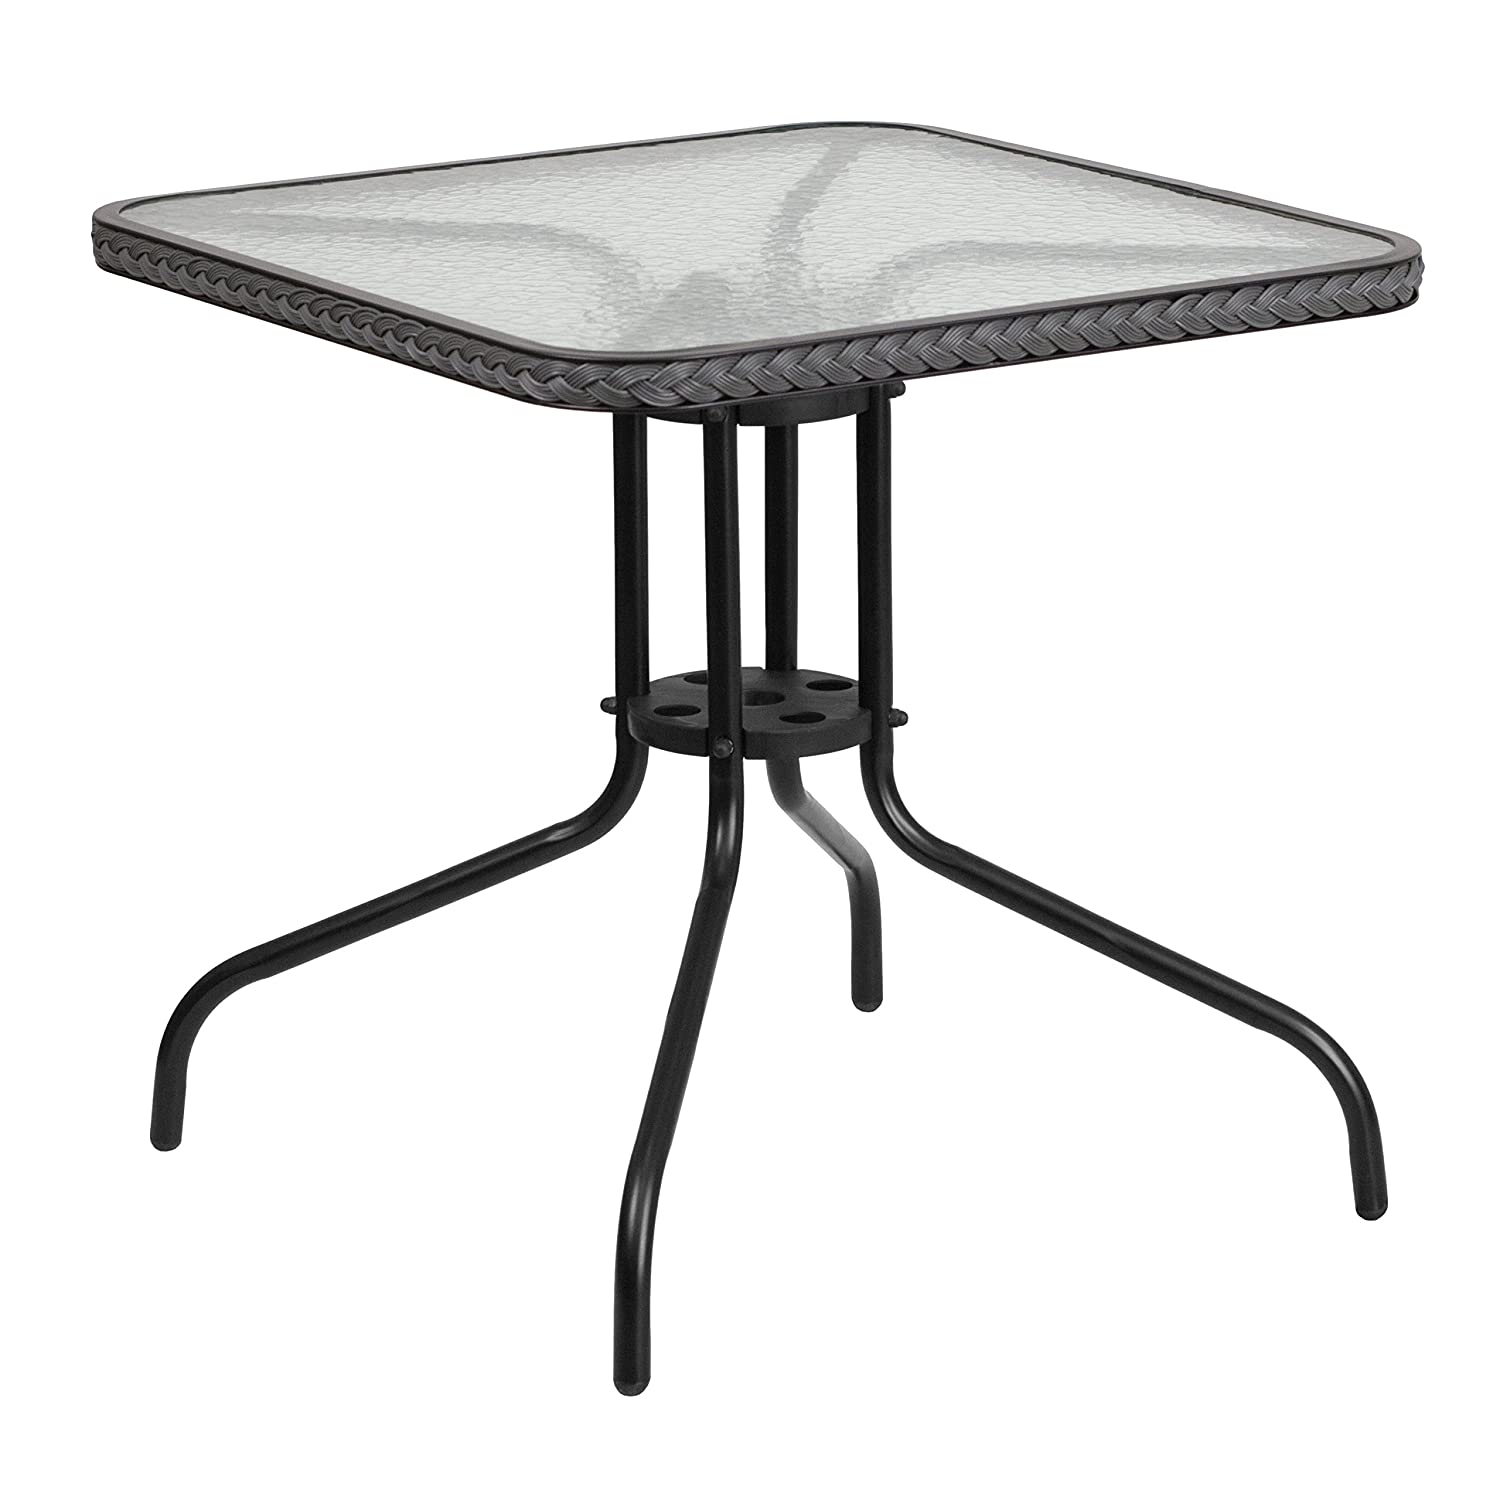 Amazon.com: Flash Furniture 28u0027u0027 Square Tempered Glass Metal Table With  Dark Brown Rattan Edging: Kitchen U0026 Dining